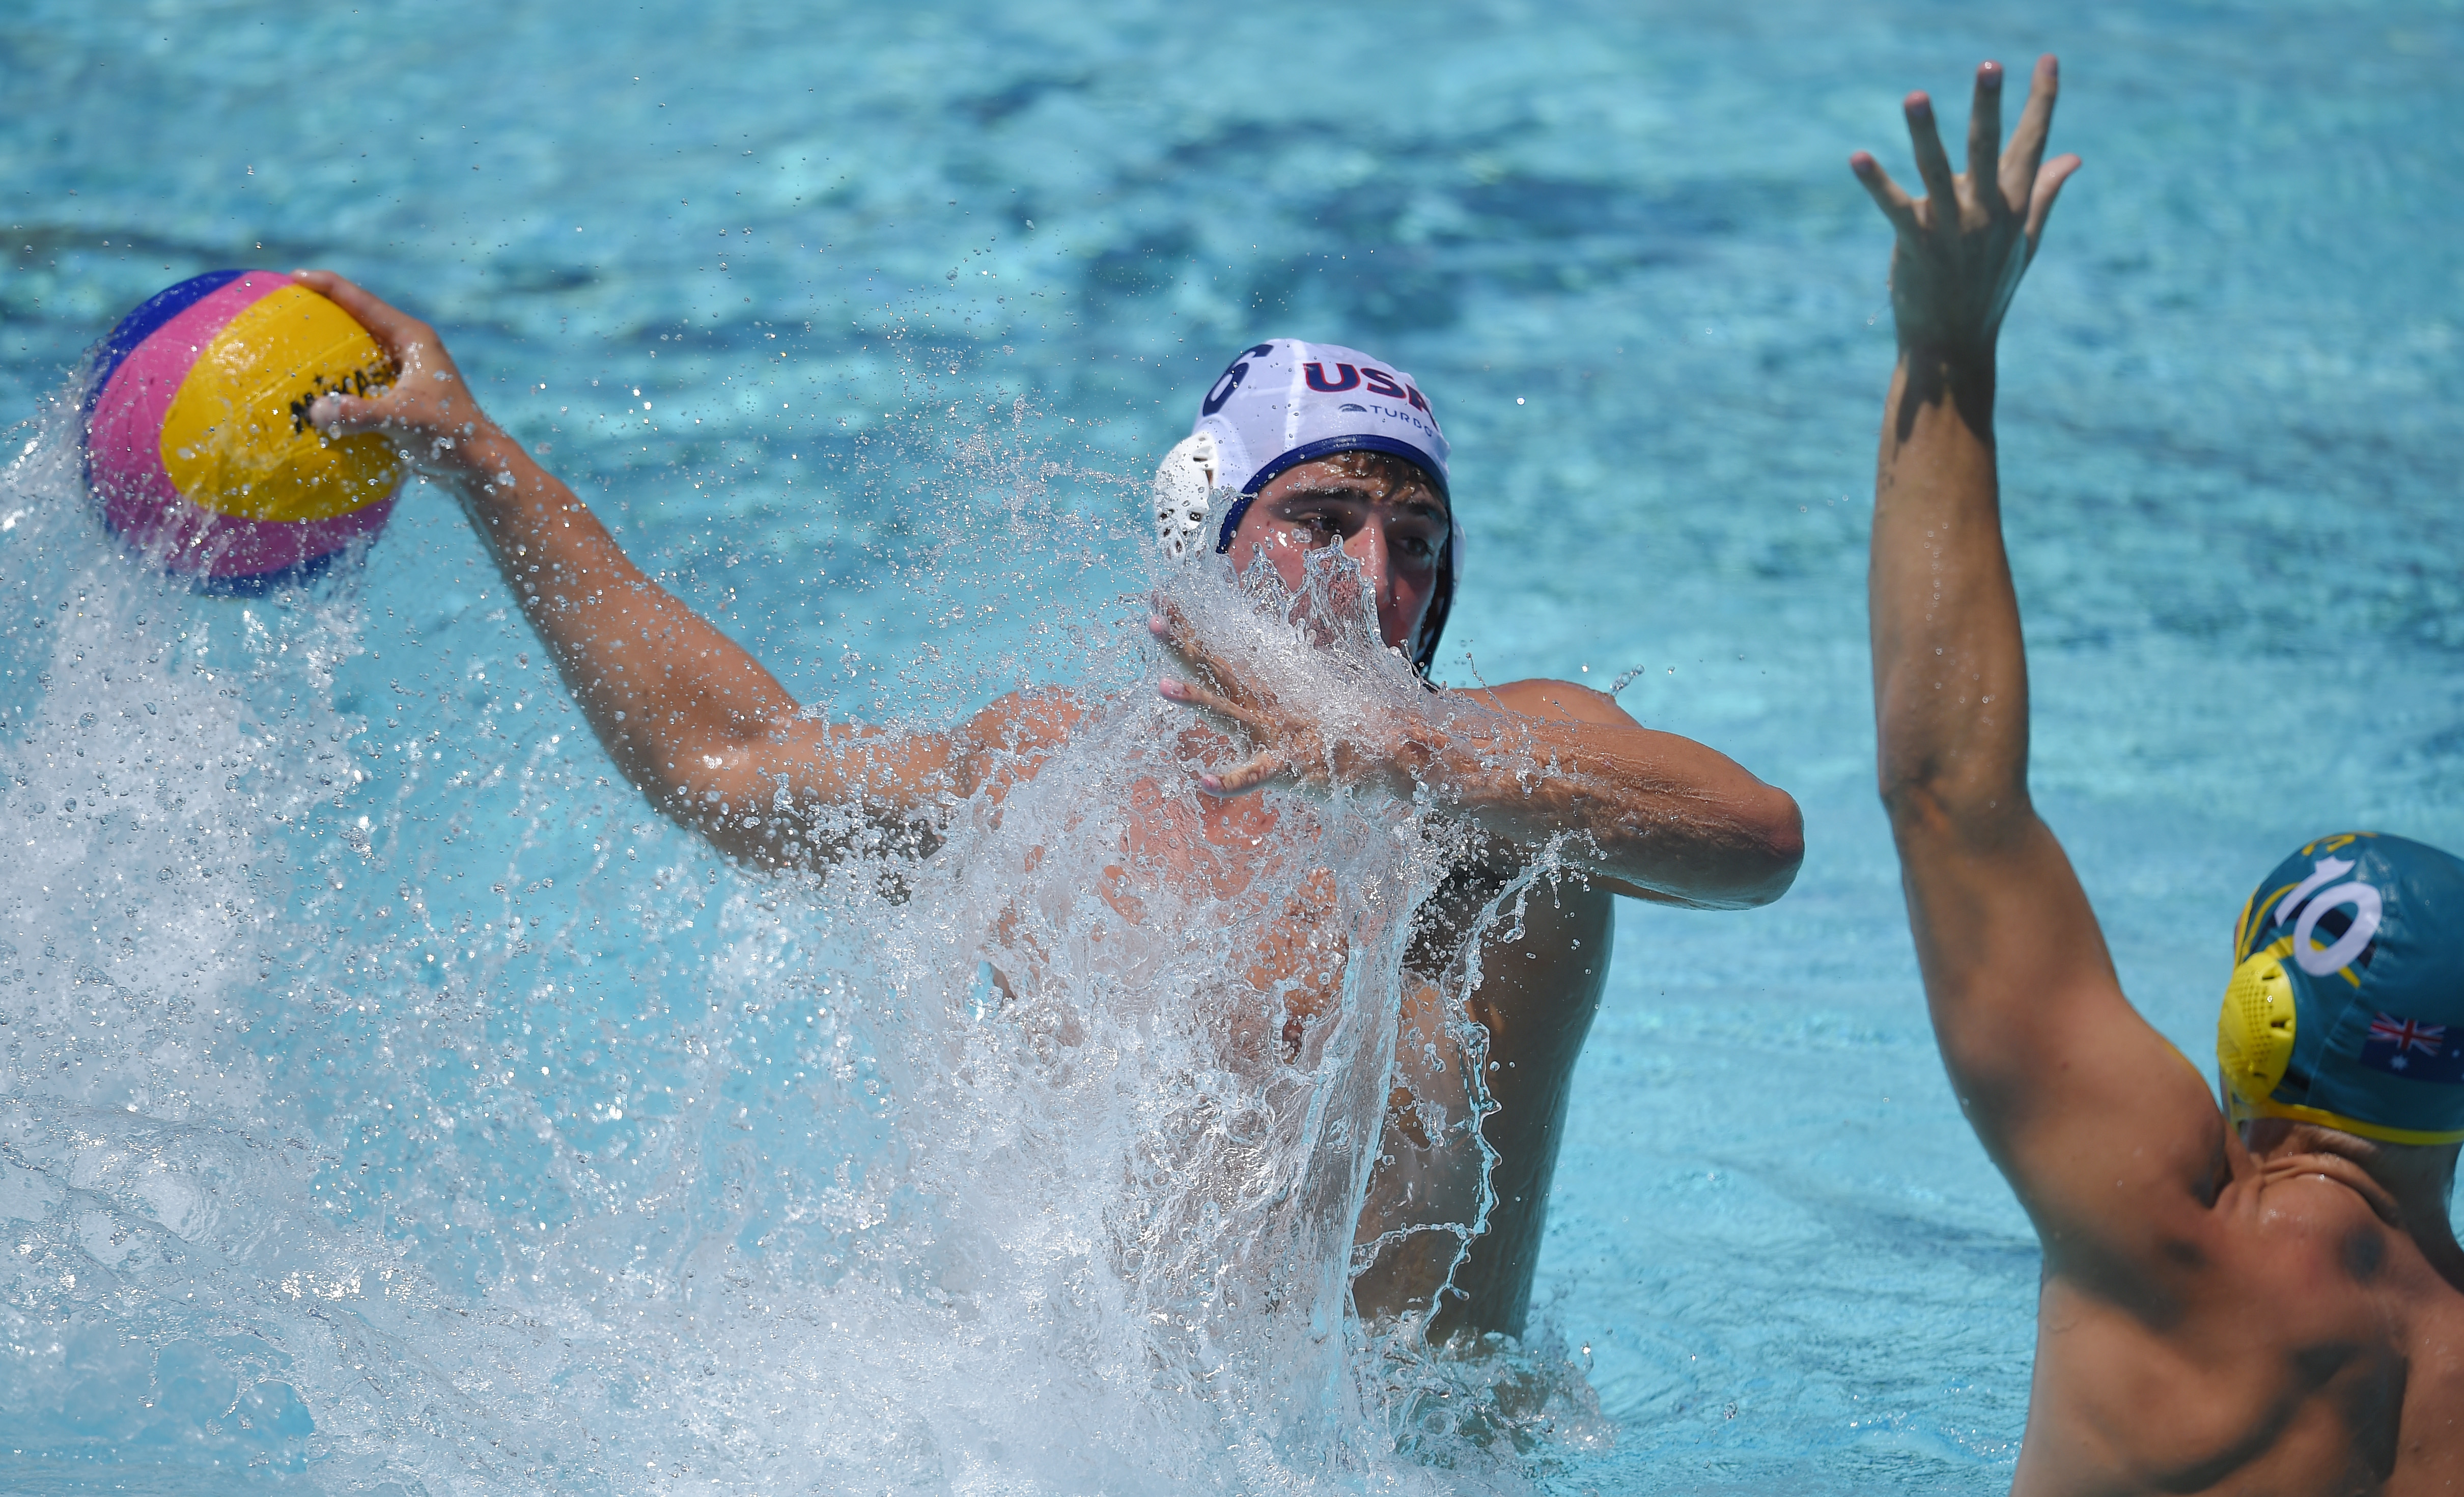 United States attacker Tony Azevedo, left, shoots and scores as Australia's Mitch Emery defends during a men's exhibition water polo match, Sunday, May 22, 2016, in Los Angeles. (AP Photo/Mark J. Terrill)